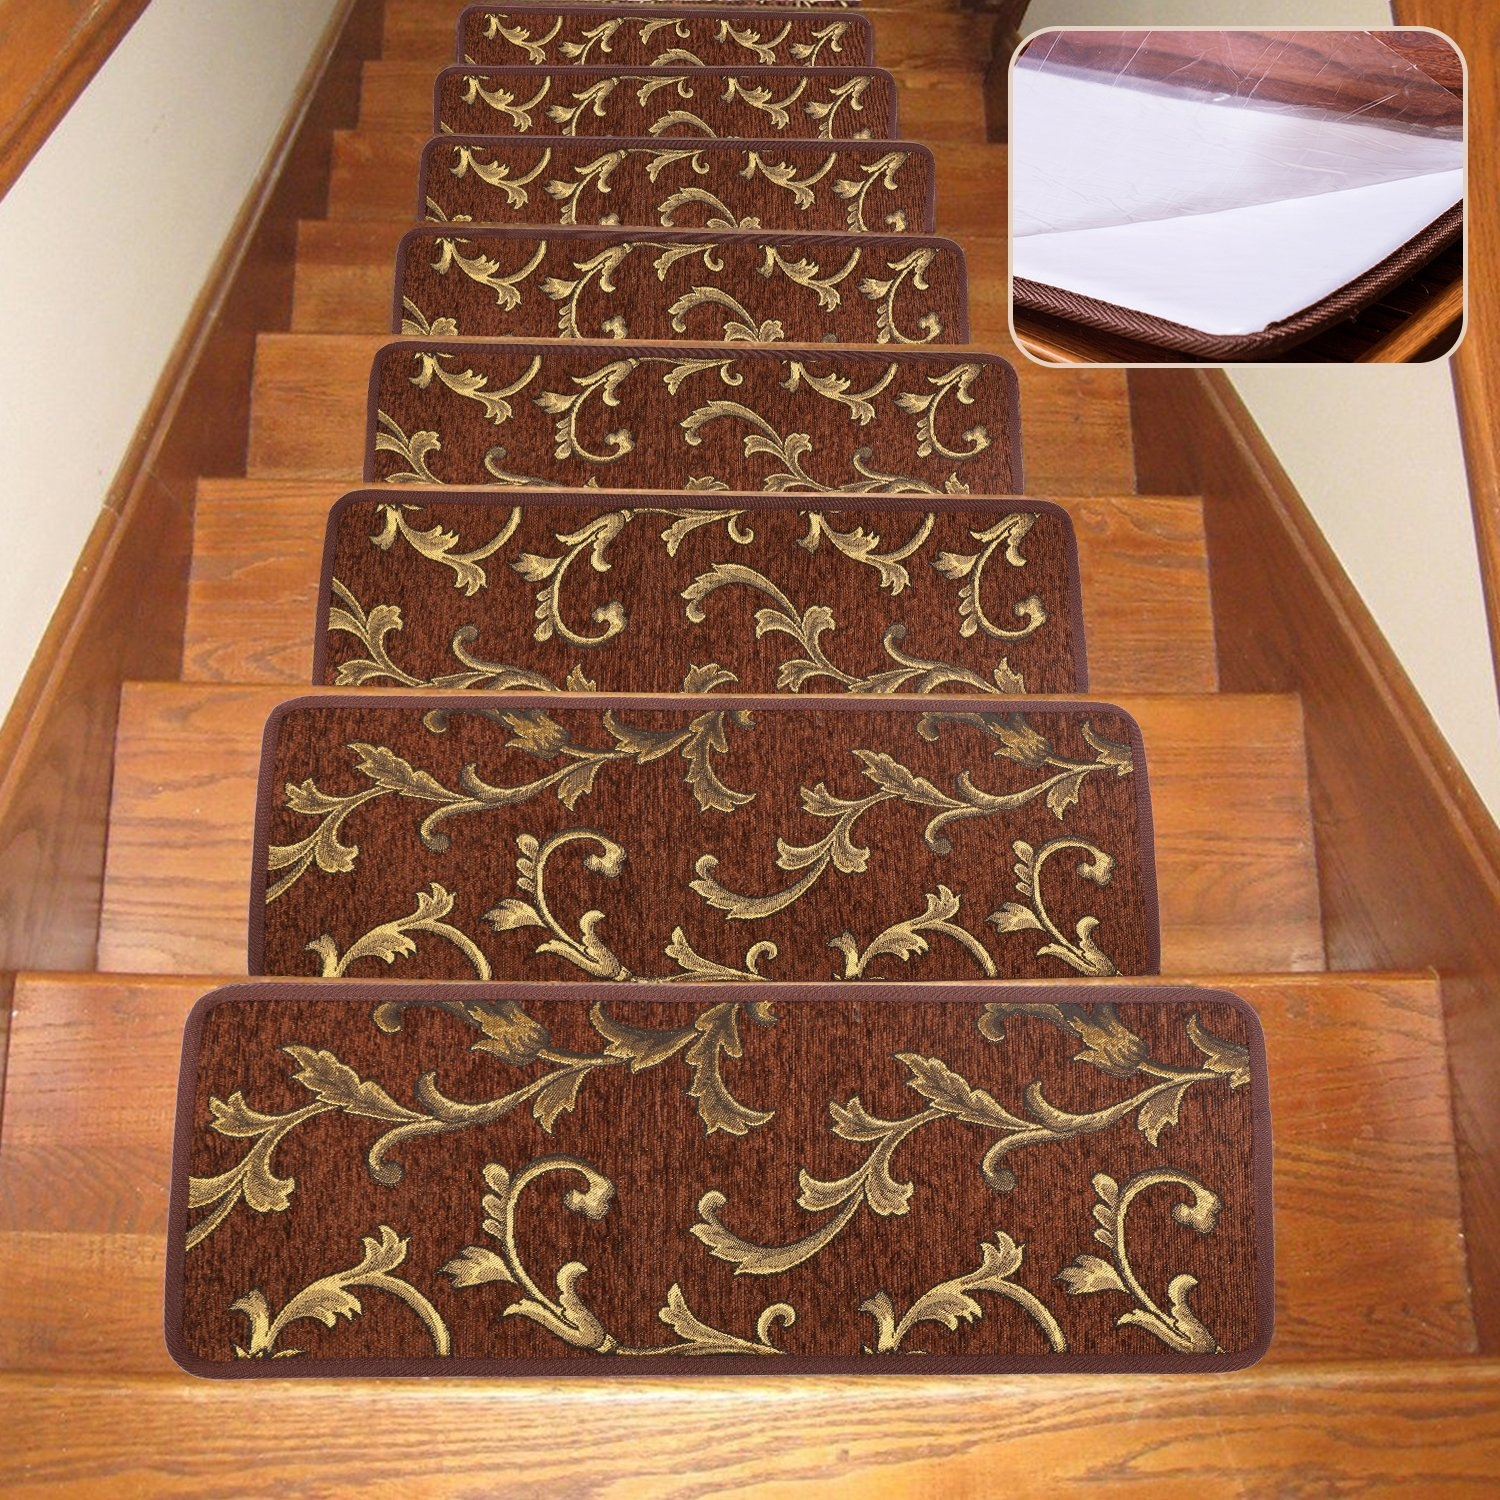 Soloom Non Slip Stair Treads Carpet Indoor Set Of 13 Blended Pertaining To Non Slip Stair Treads Carpets (View 20 of 20)